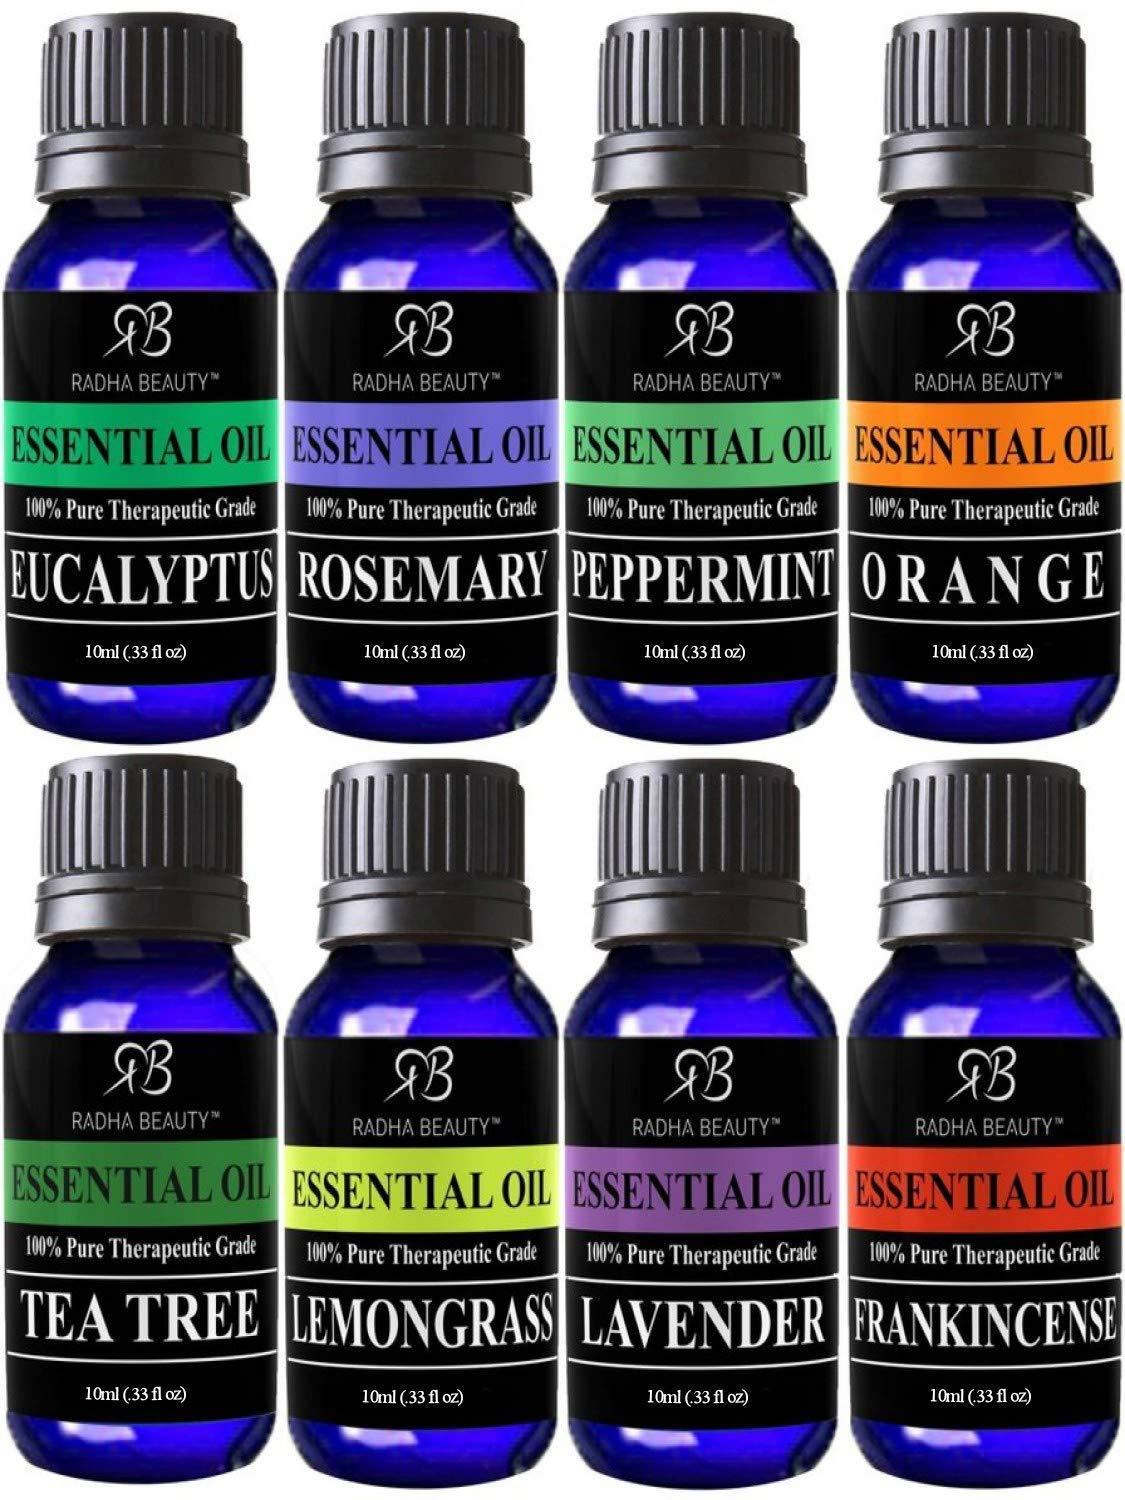 Radha Beauty Aromatherapy Top 8 Essential Oils 100% Pure & Therapeutic Grade - Basic Sampler Gift Set & Kit (Lavender, Tea Tree, Eucalpytus, Lemongrass, Orange, Peppermint, Frankincense, and Rosemary)